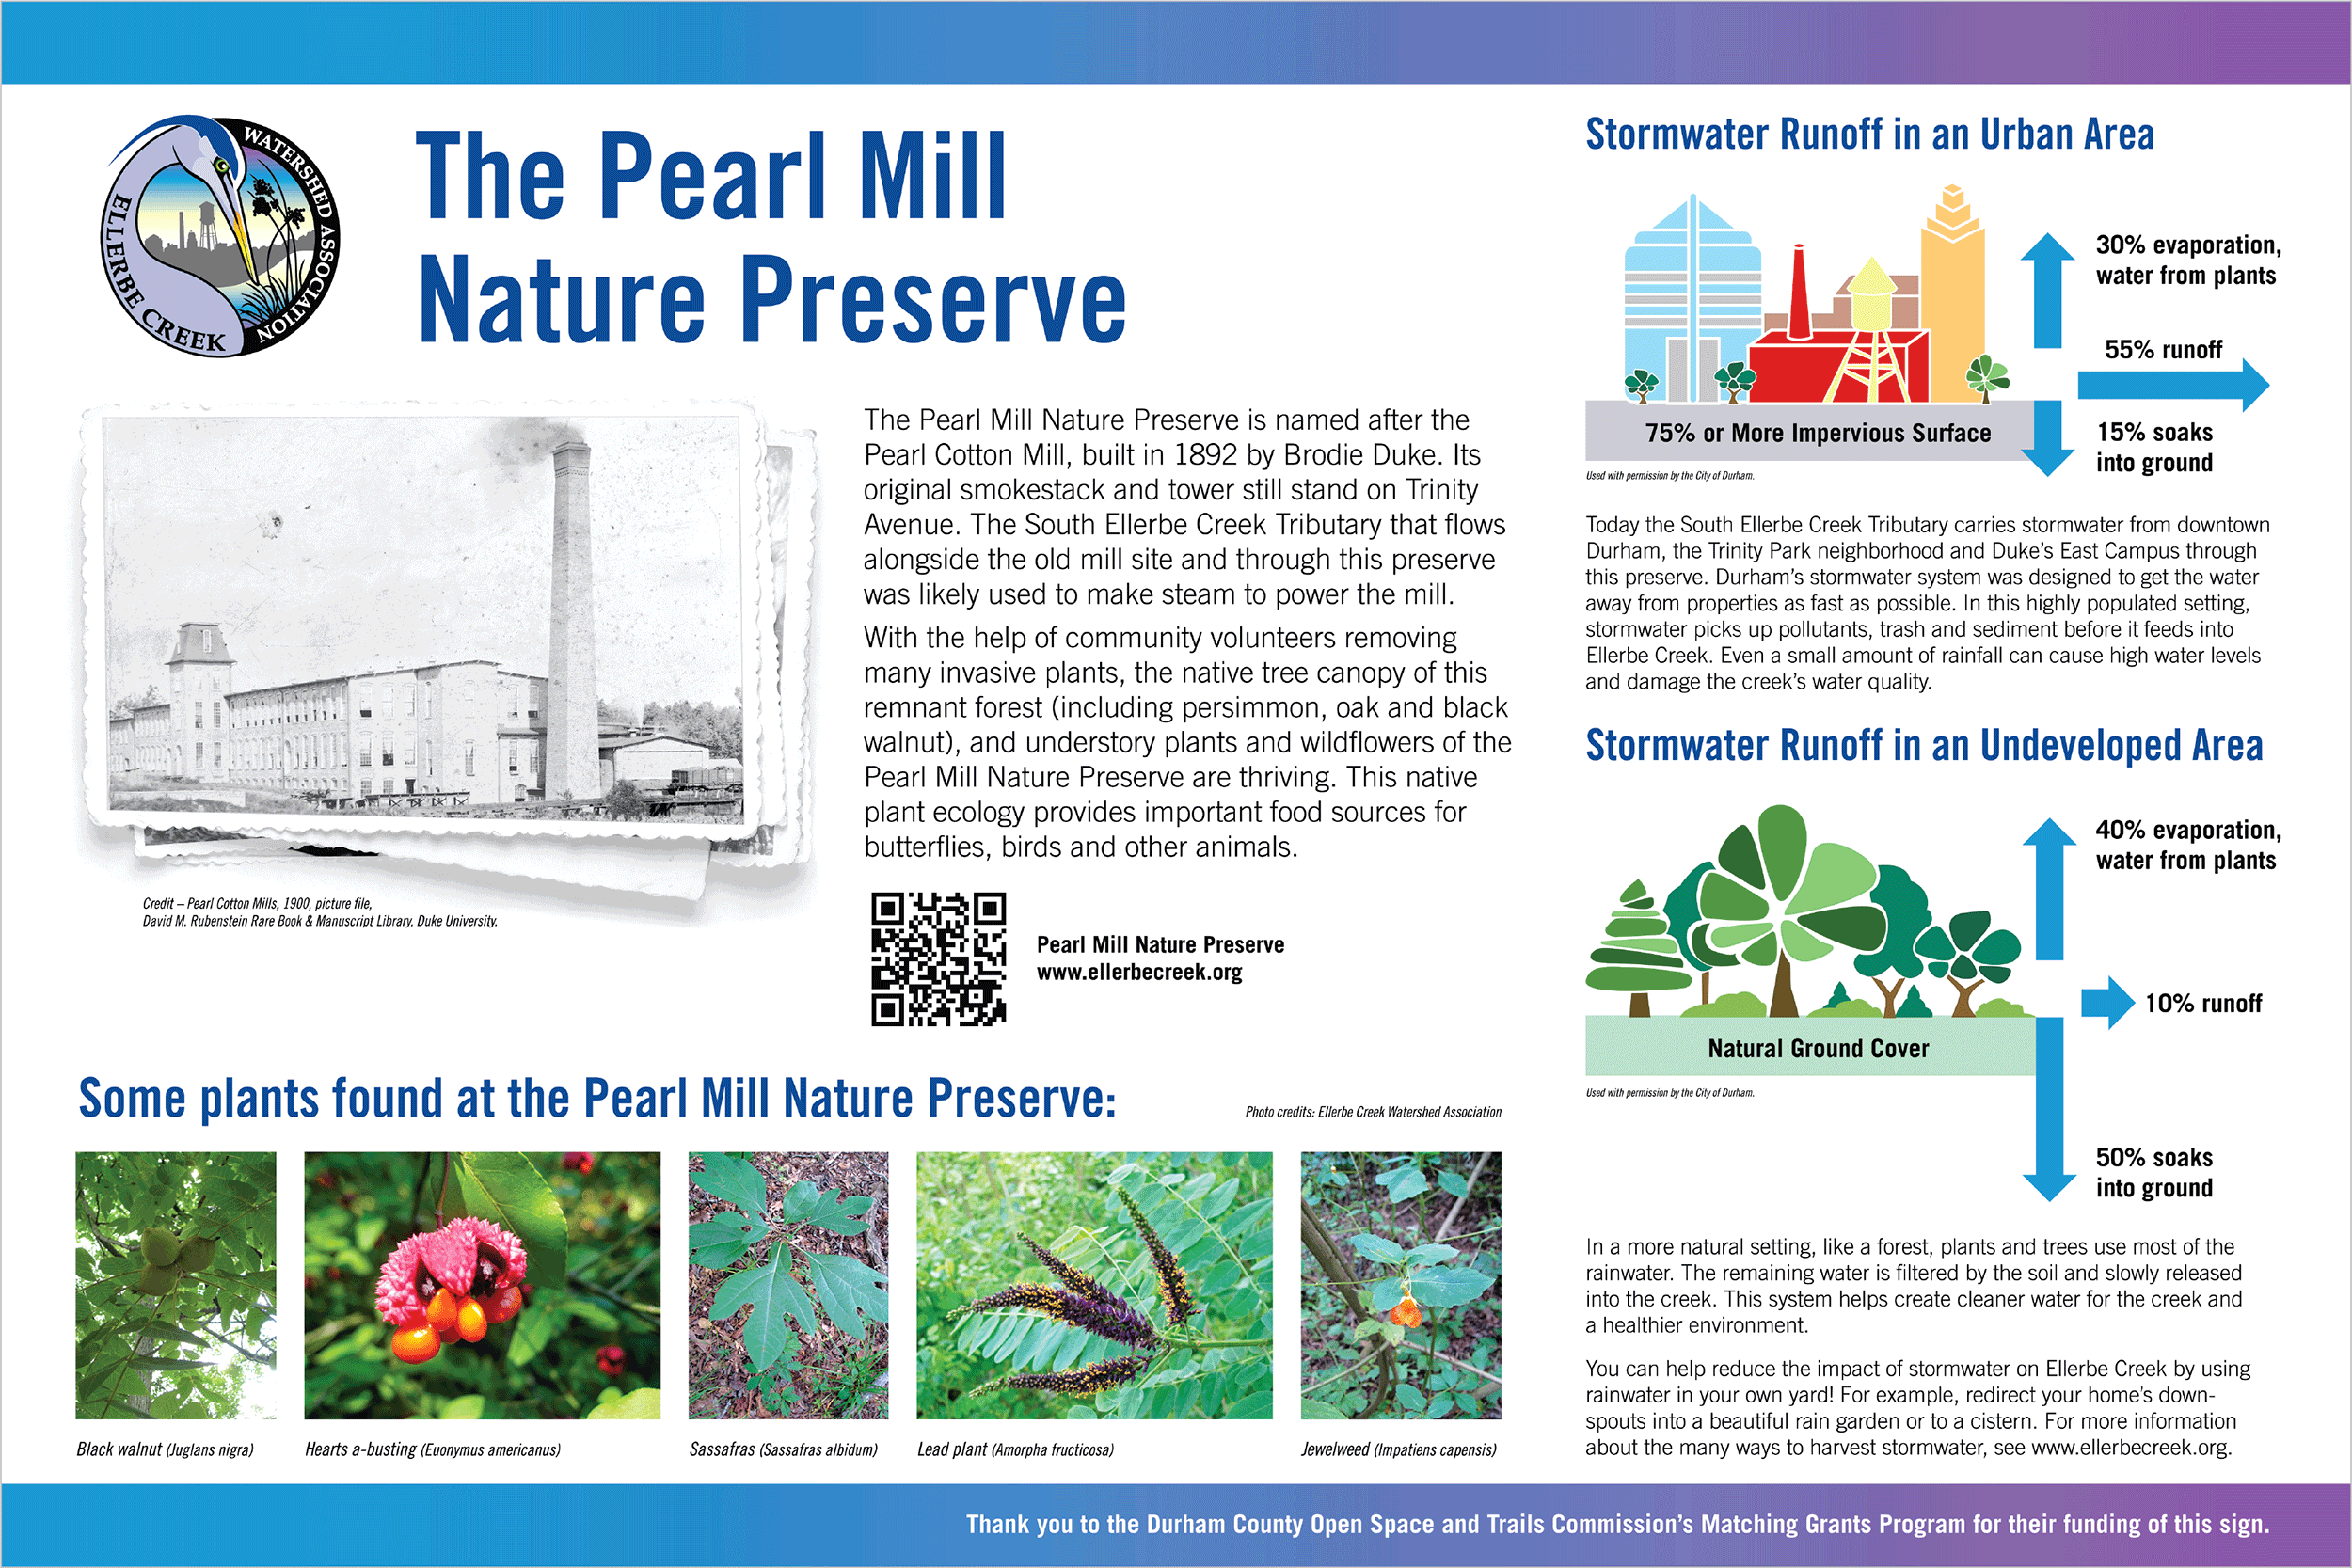 Poster design by Virtual Apiary for Ellerbe Creek Watershed Association